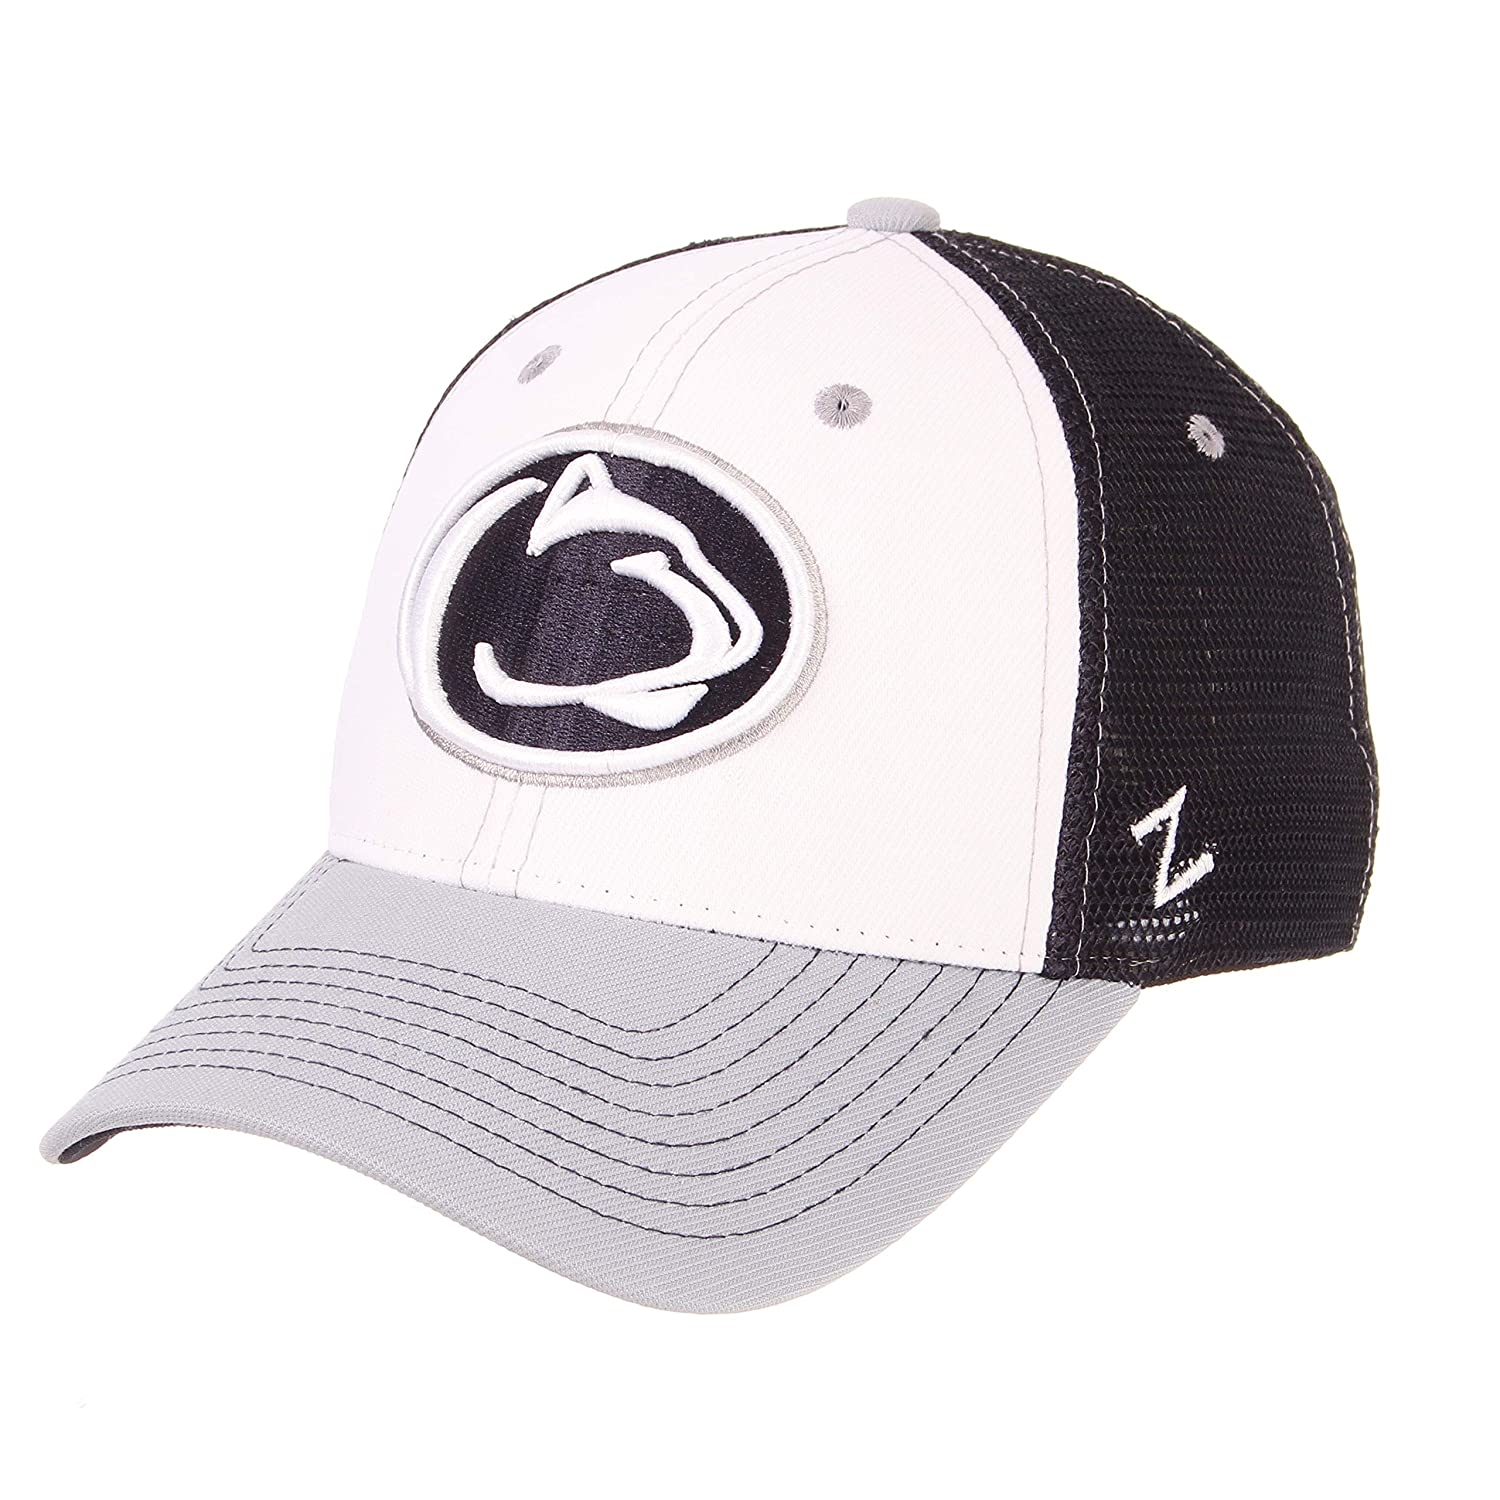 Zephyr Mens Threepeat Relaxed Cap Adjustable White//Team Color